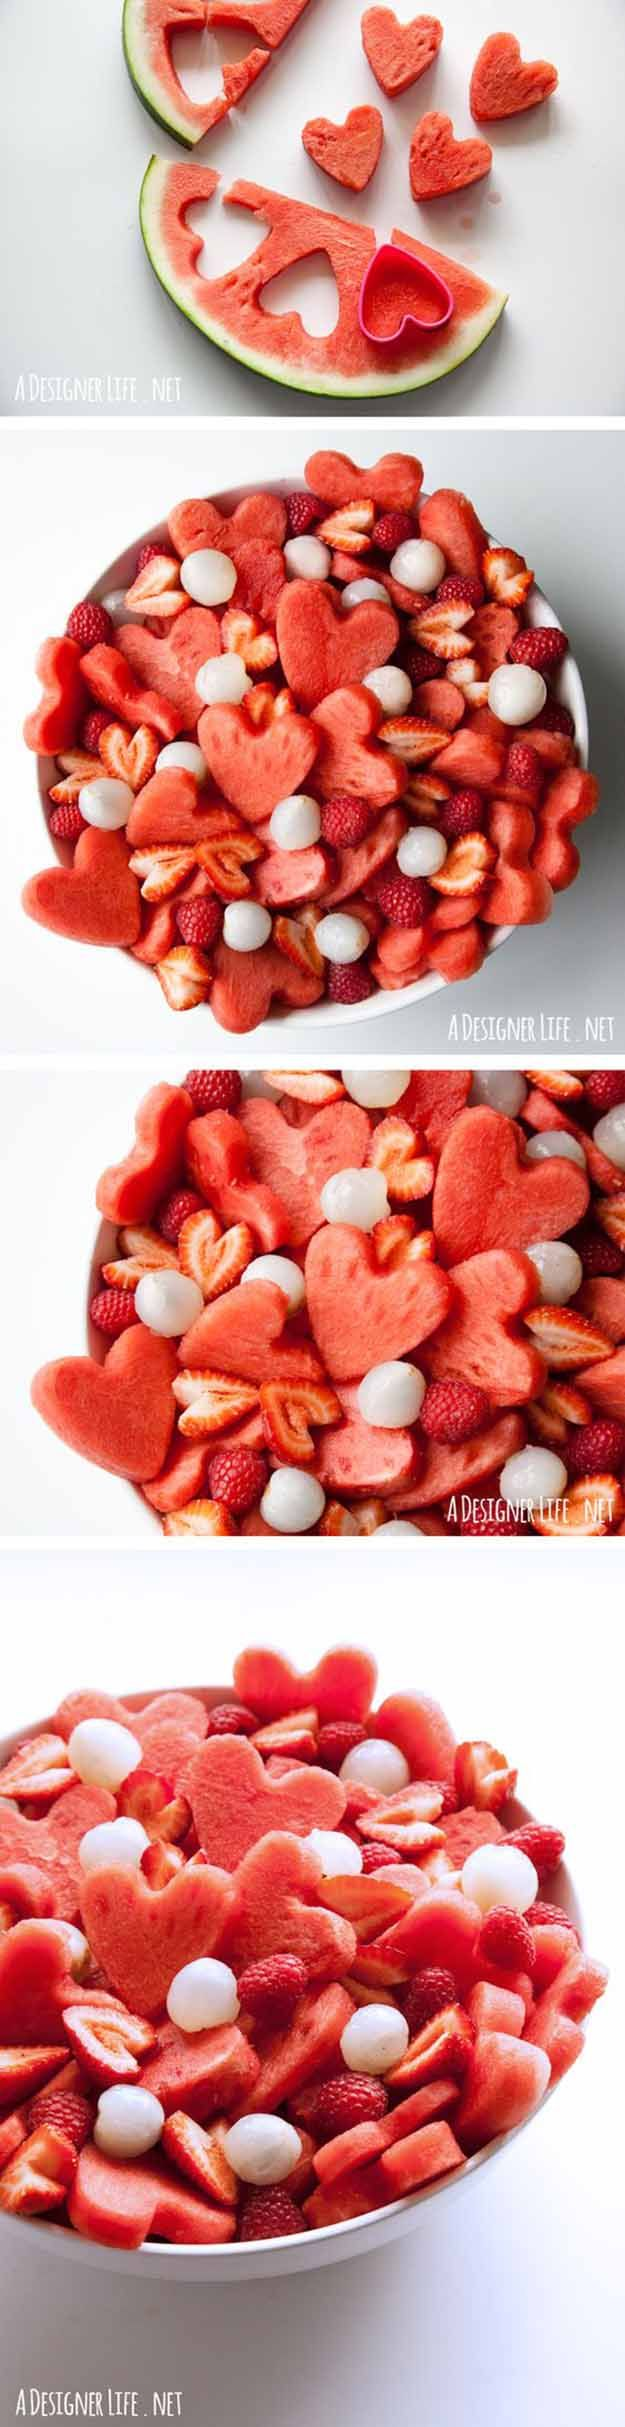 Watermelon Fruit Salad|25 Valentines Day Treats That Look Way Too Good to Eat,see more at: https://diyprojects.com/valentines-day-treats-that-looks-too-good-to-eat/